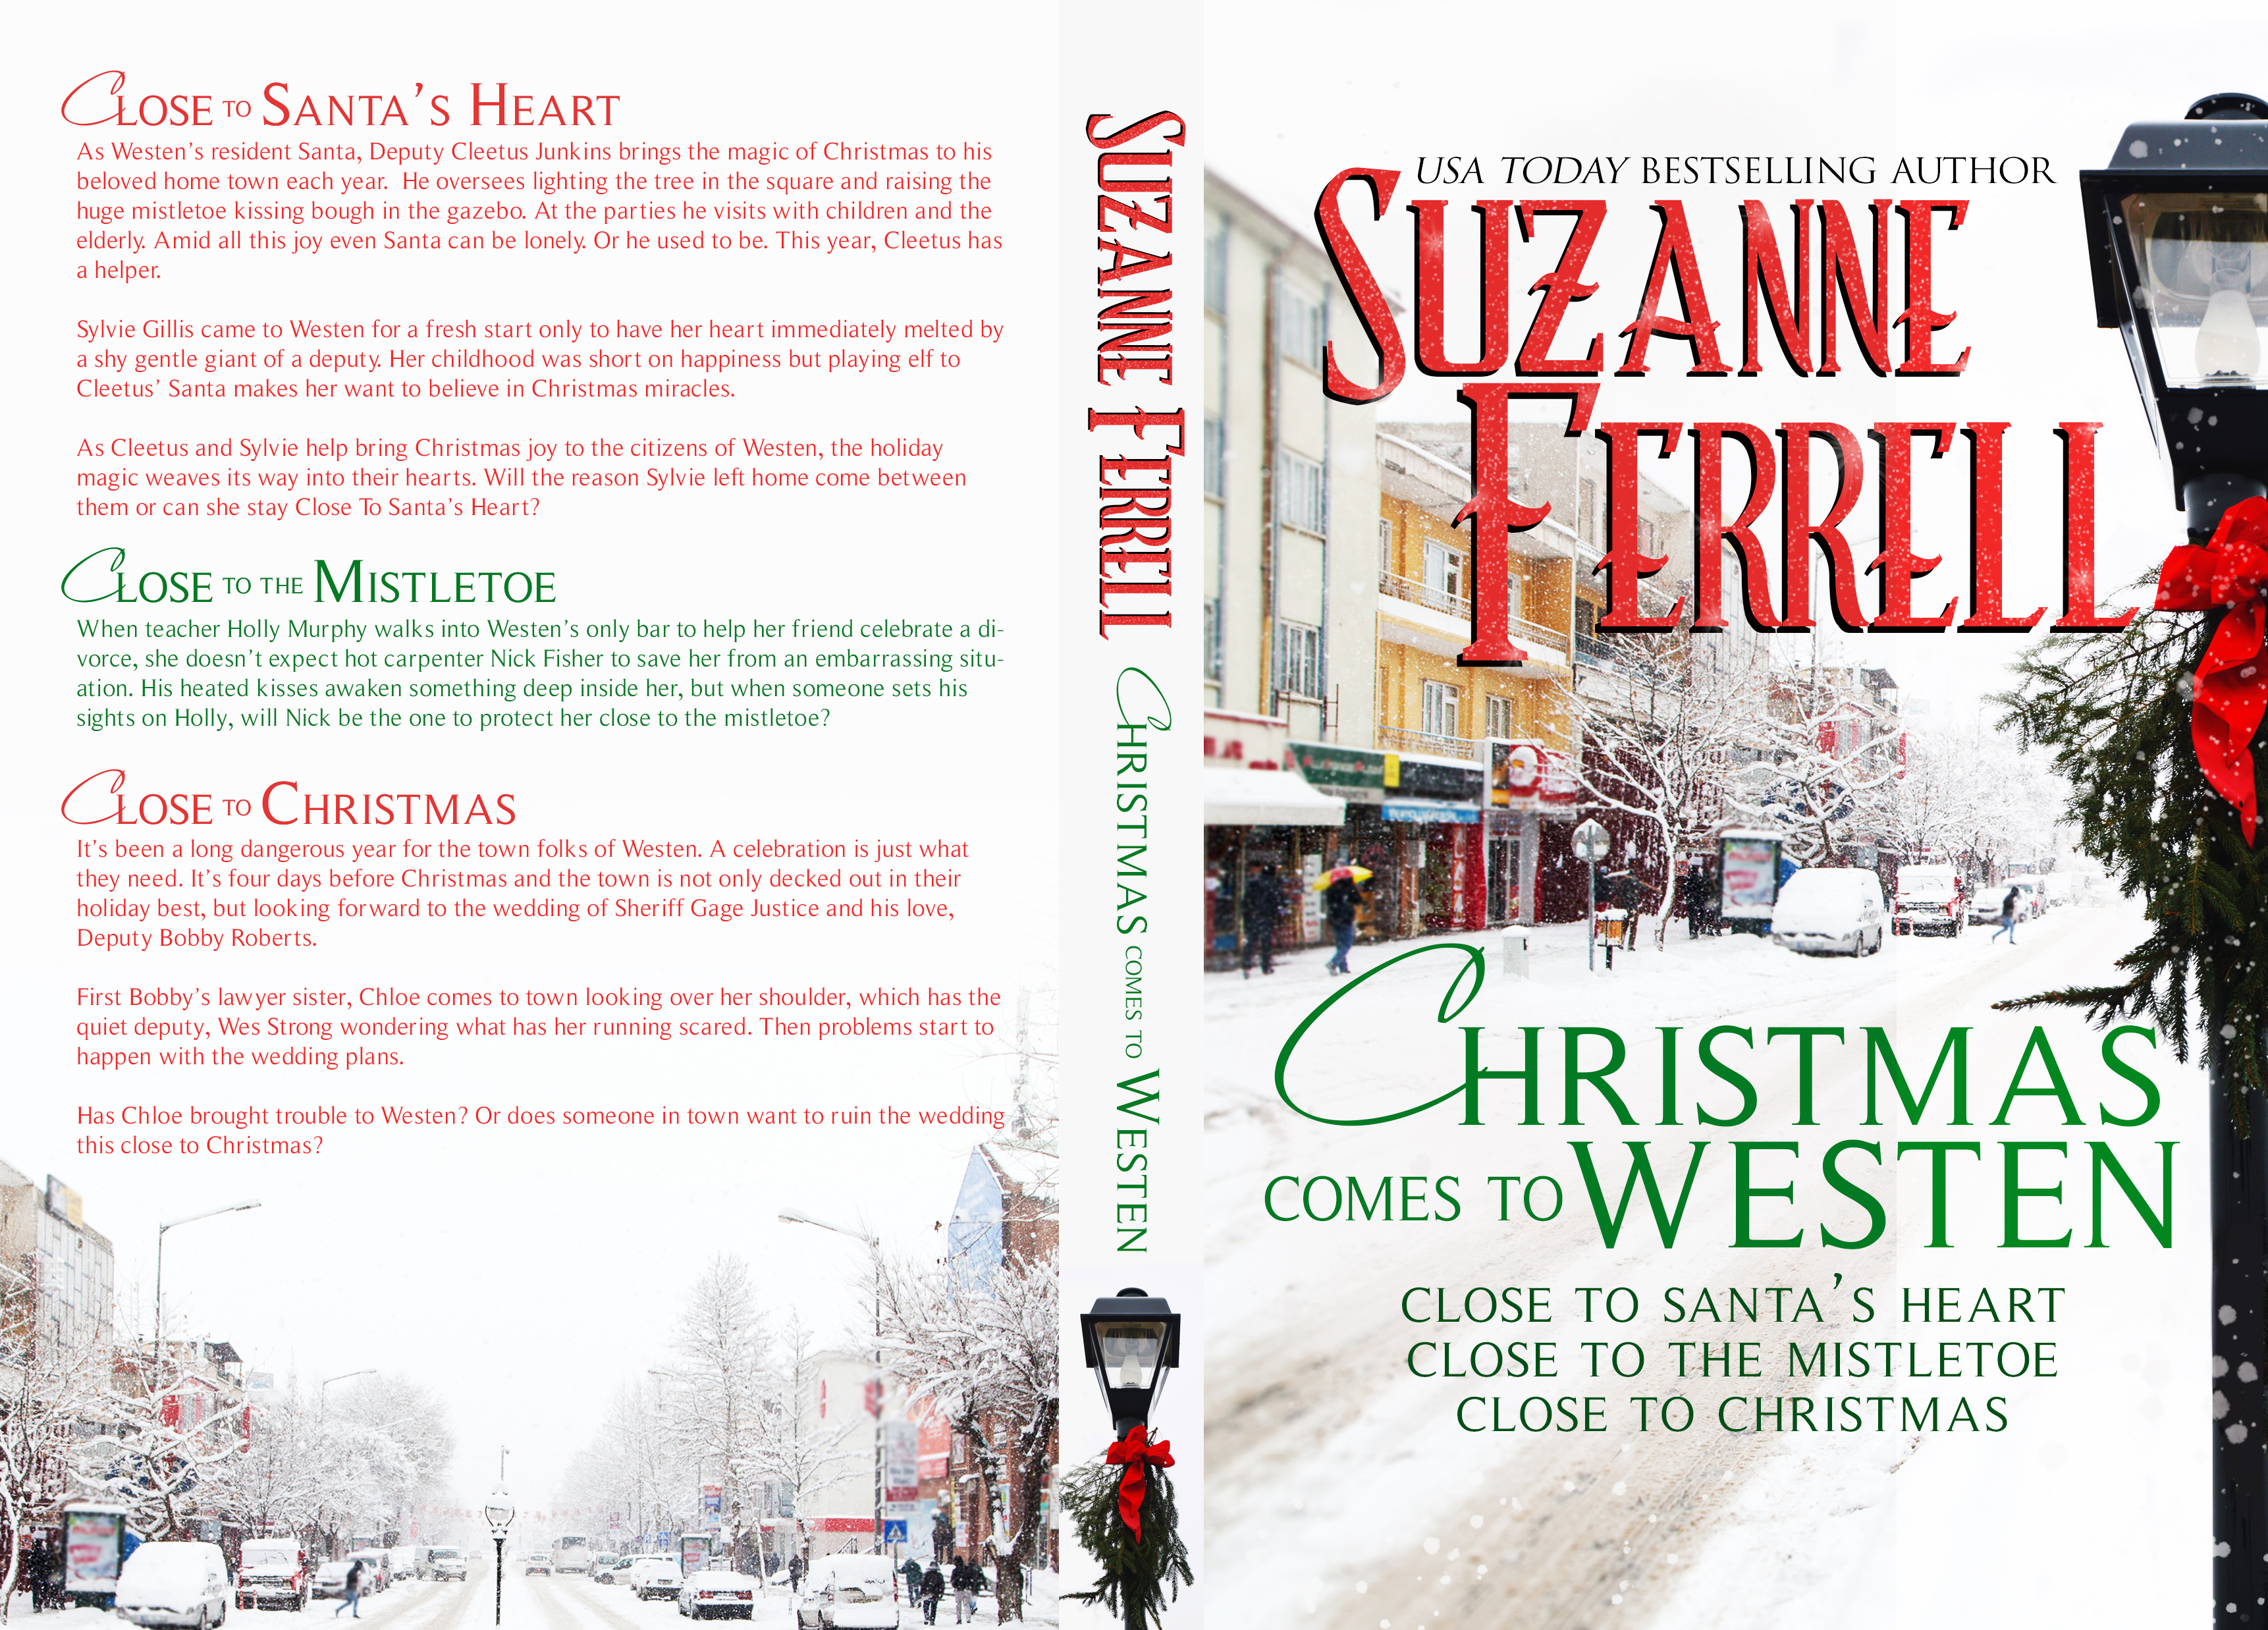 Christmas Comes to Westen 5_25 x 8 WRONG PAGE COUNT